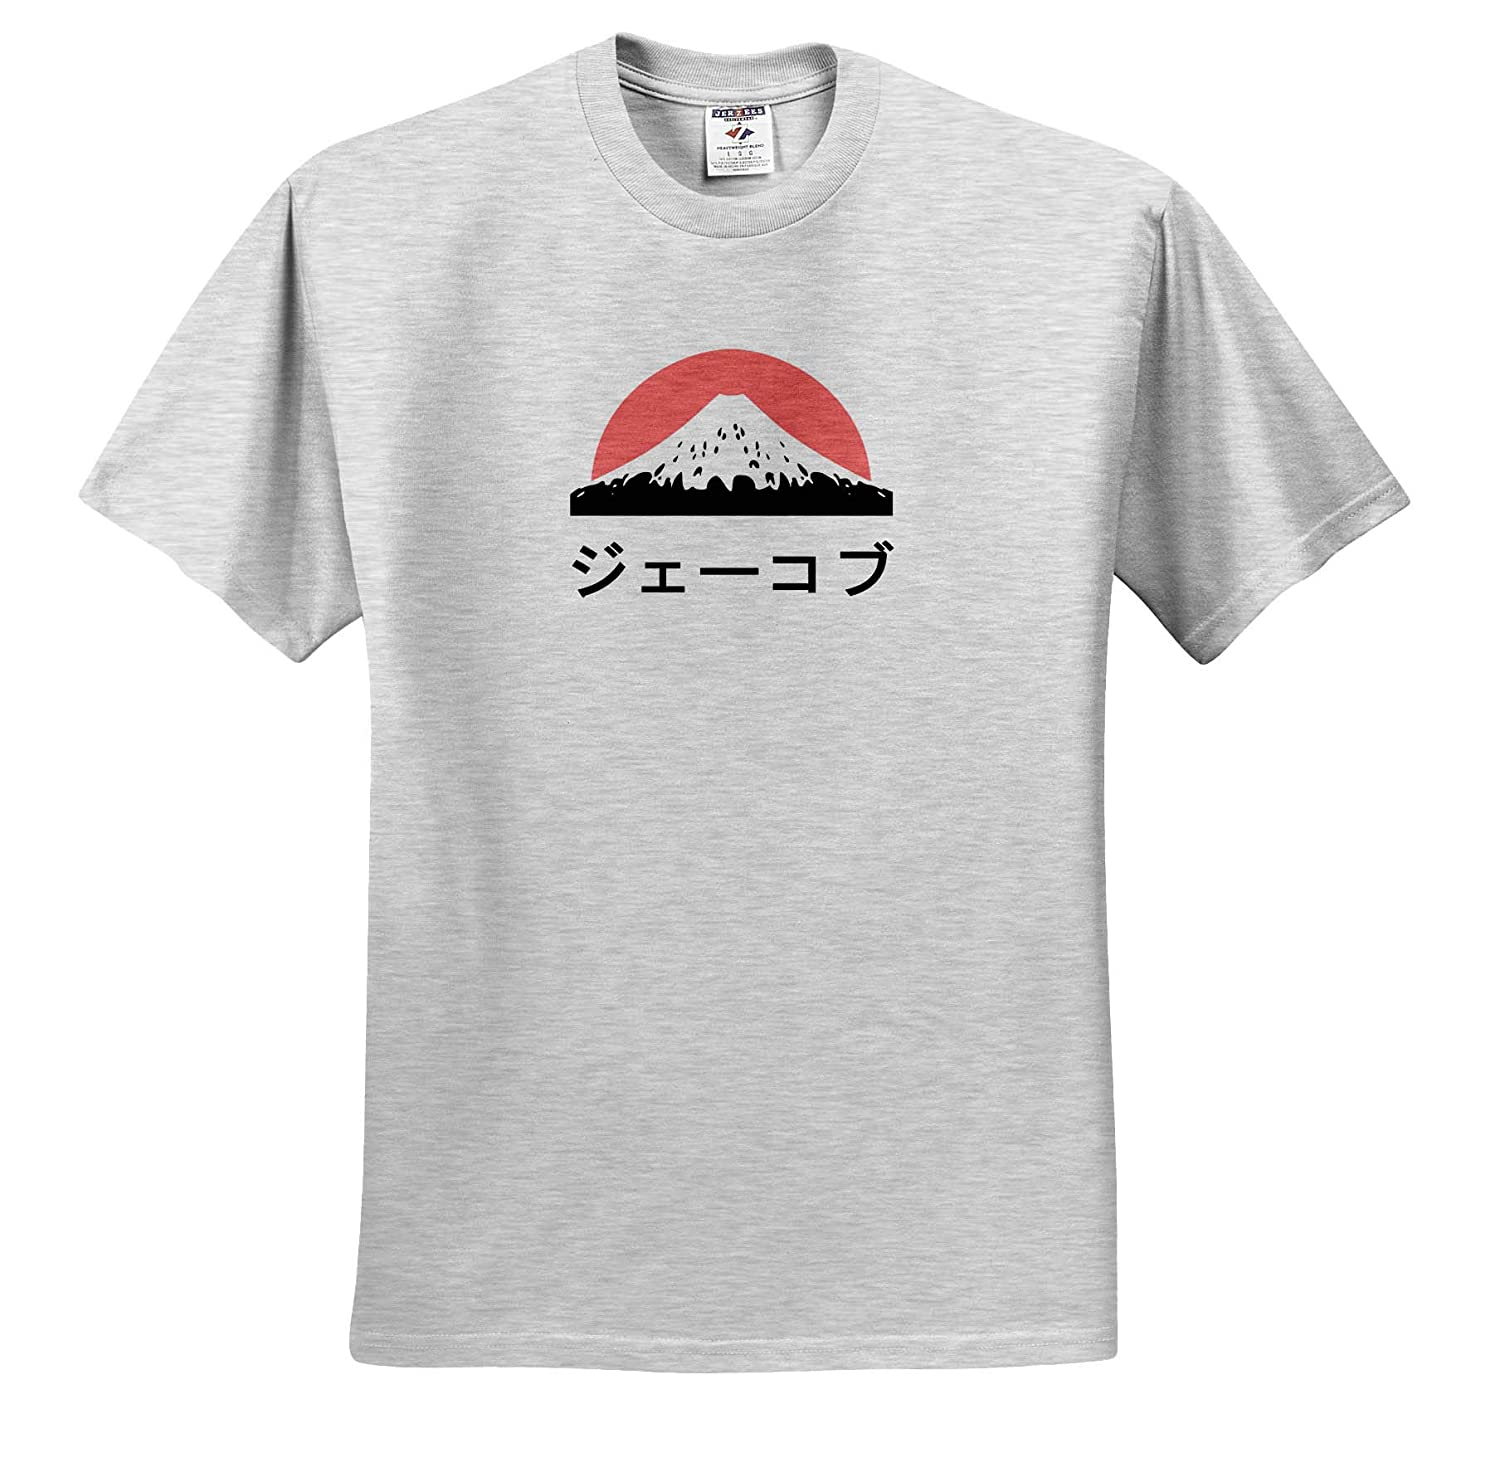 Jacob in Japanese Letters Adult T-Shirt XL 3dRose InspirationzStore Name in Japanese ts/_320499